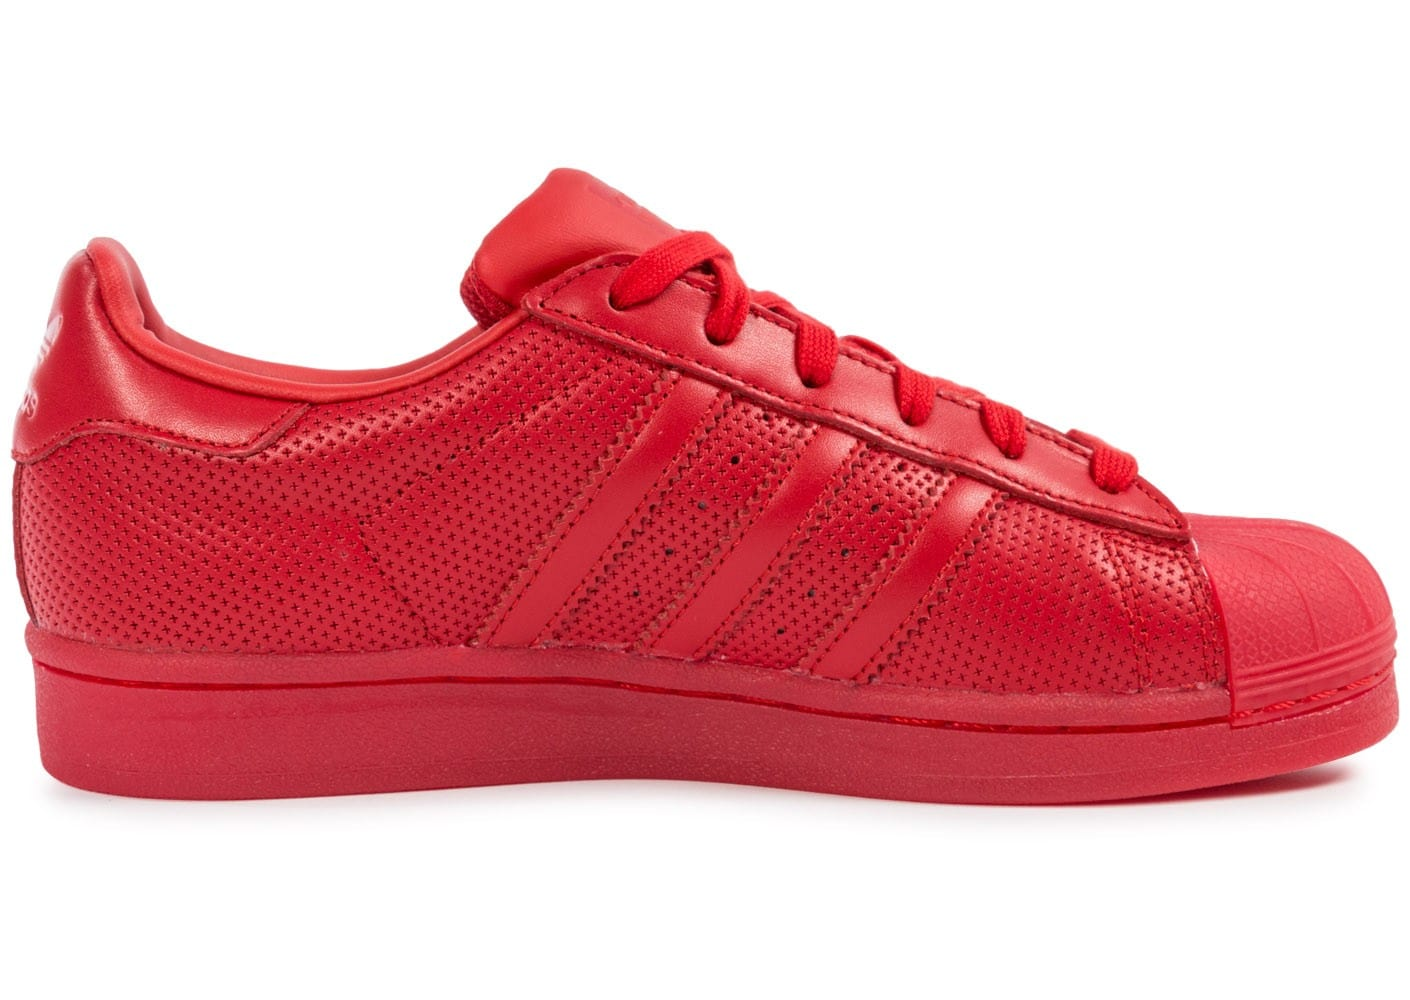 Adicolor Chausport Chaussures Adidas Rouge Superstar W HbE2eWDY9I